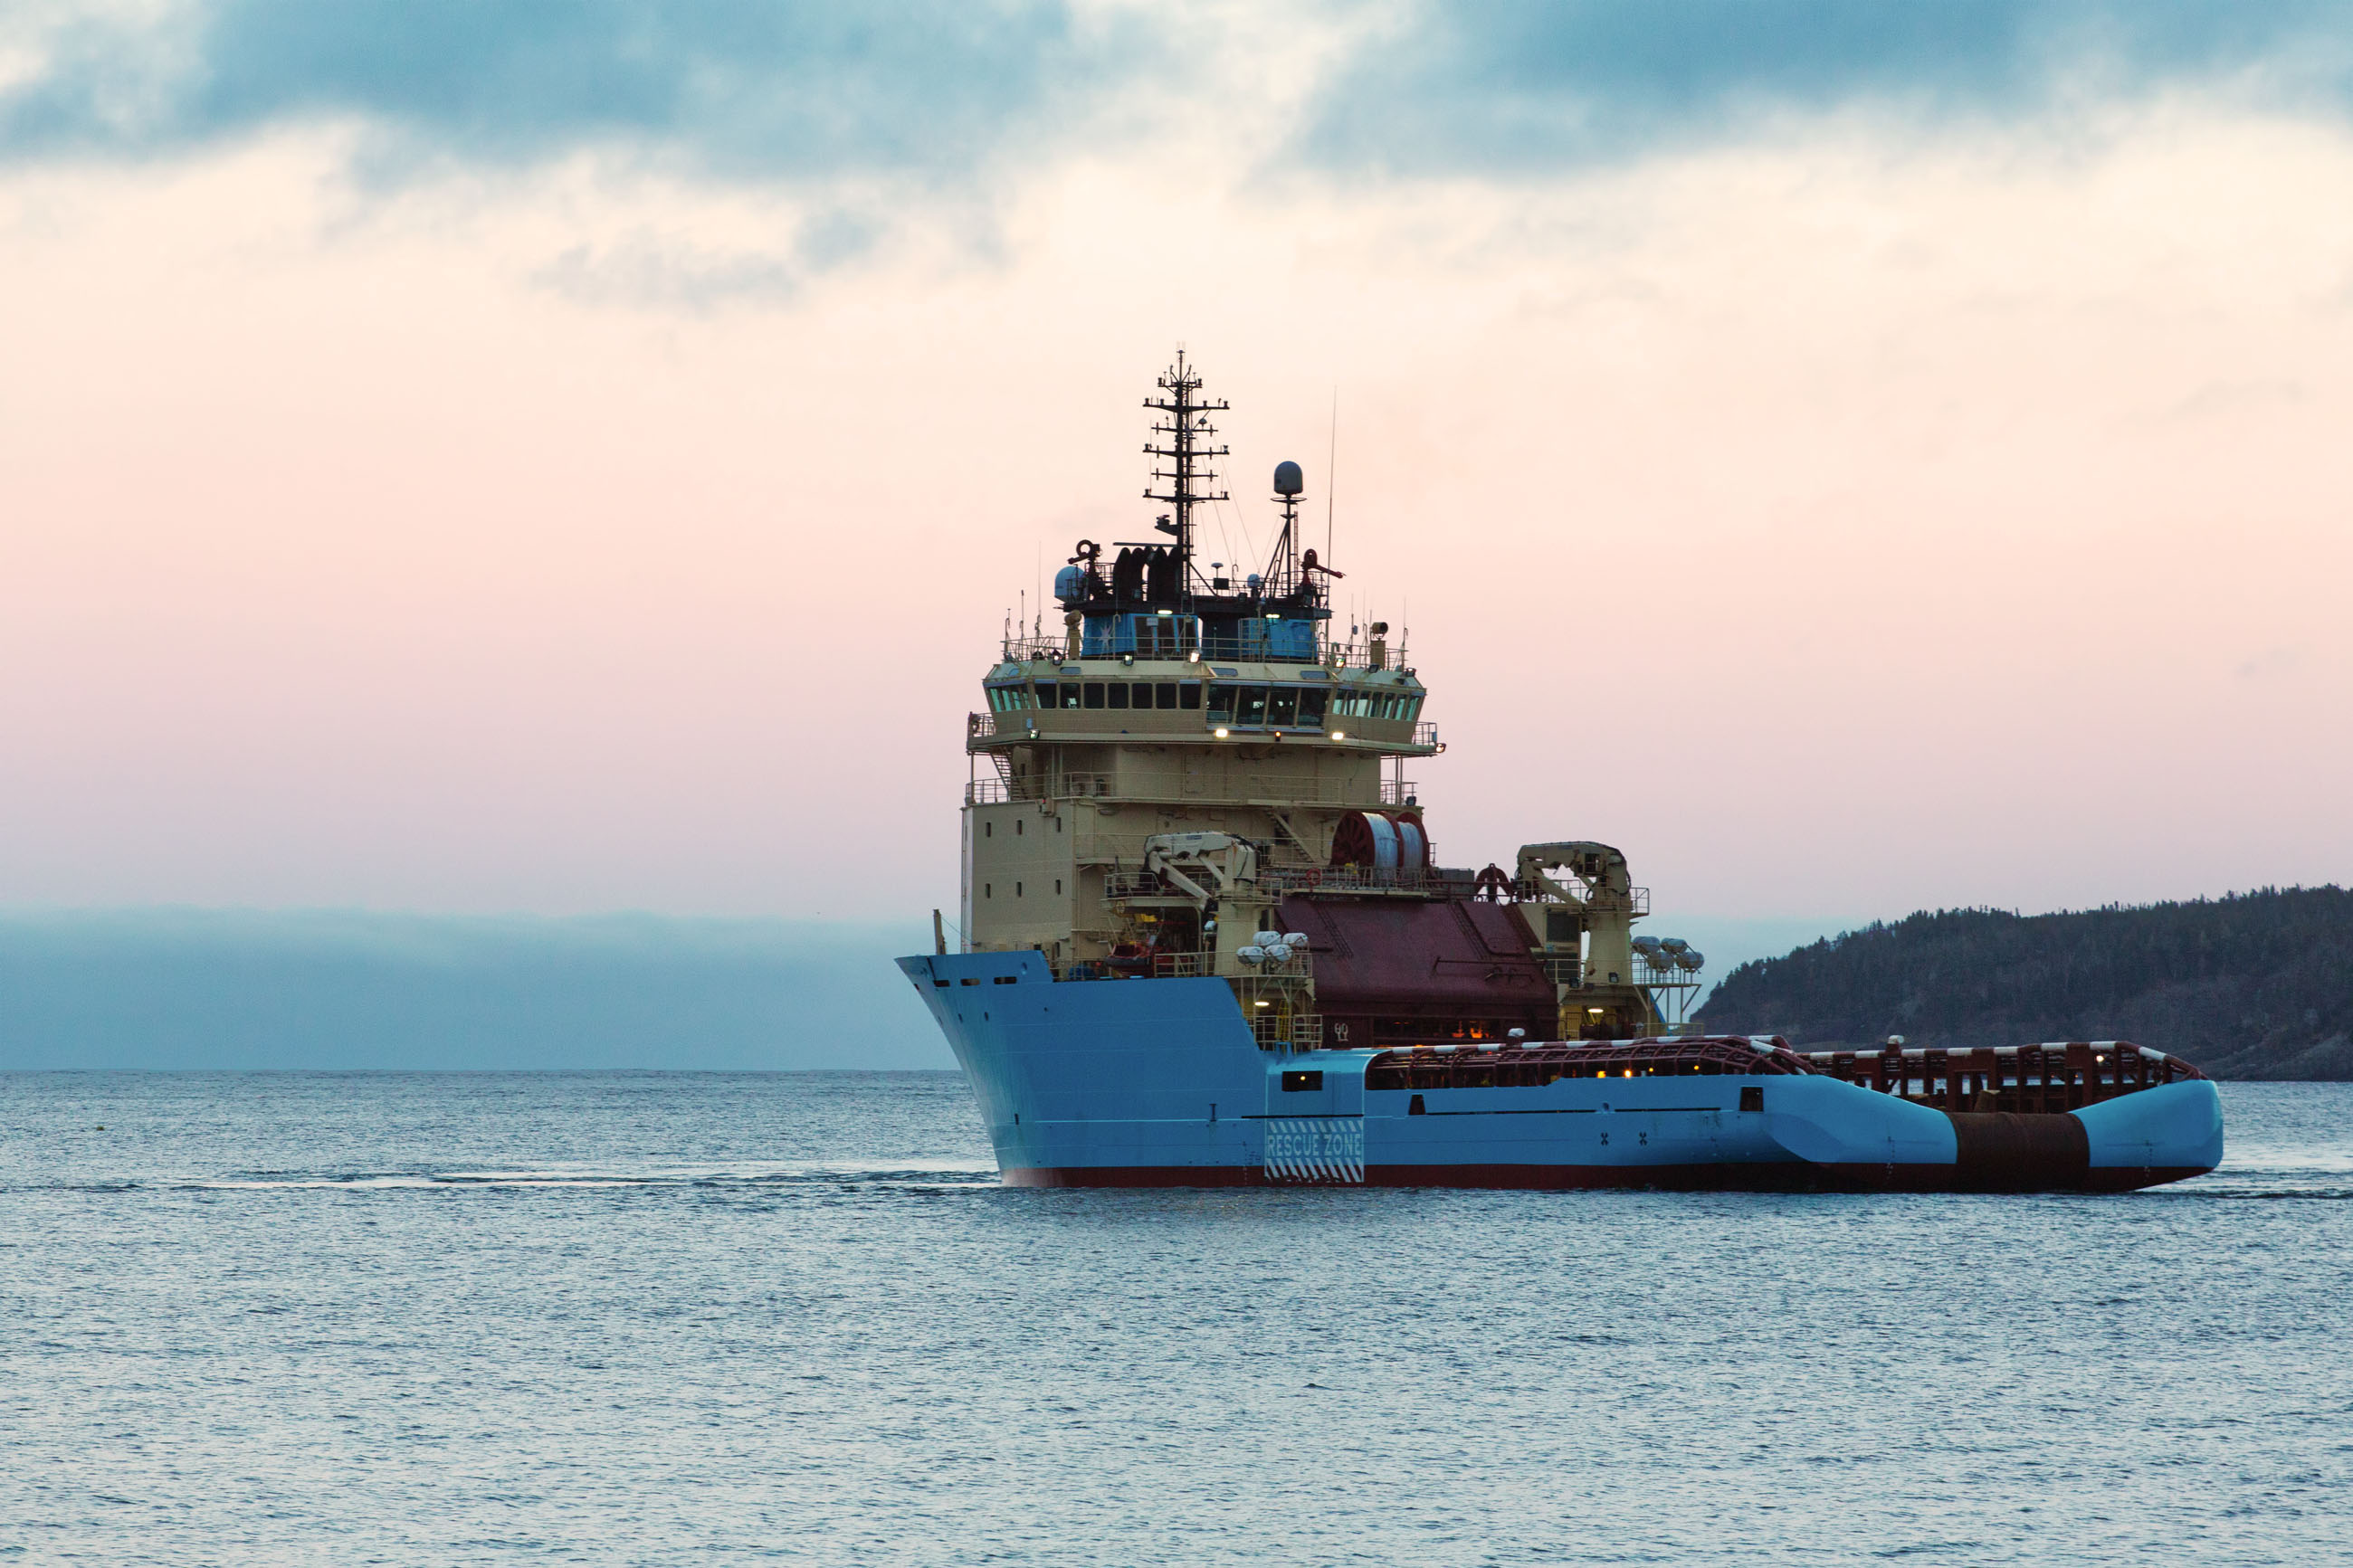 Offshore supply vessel photo